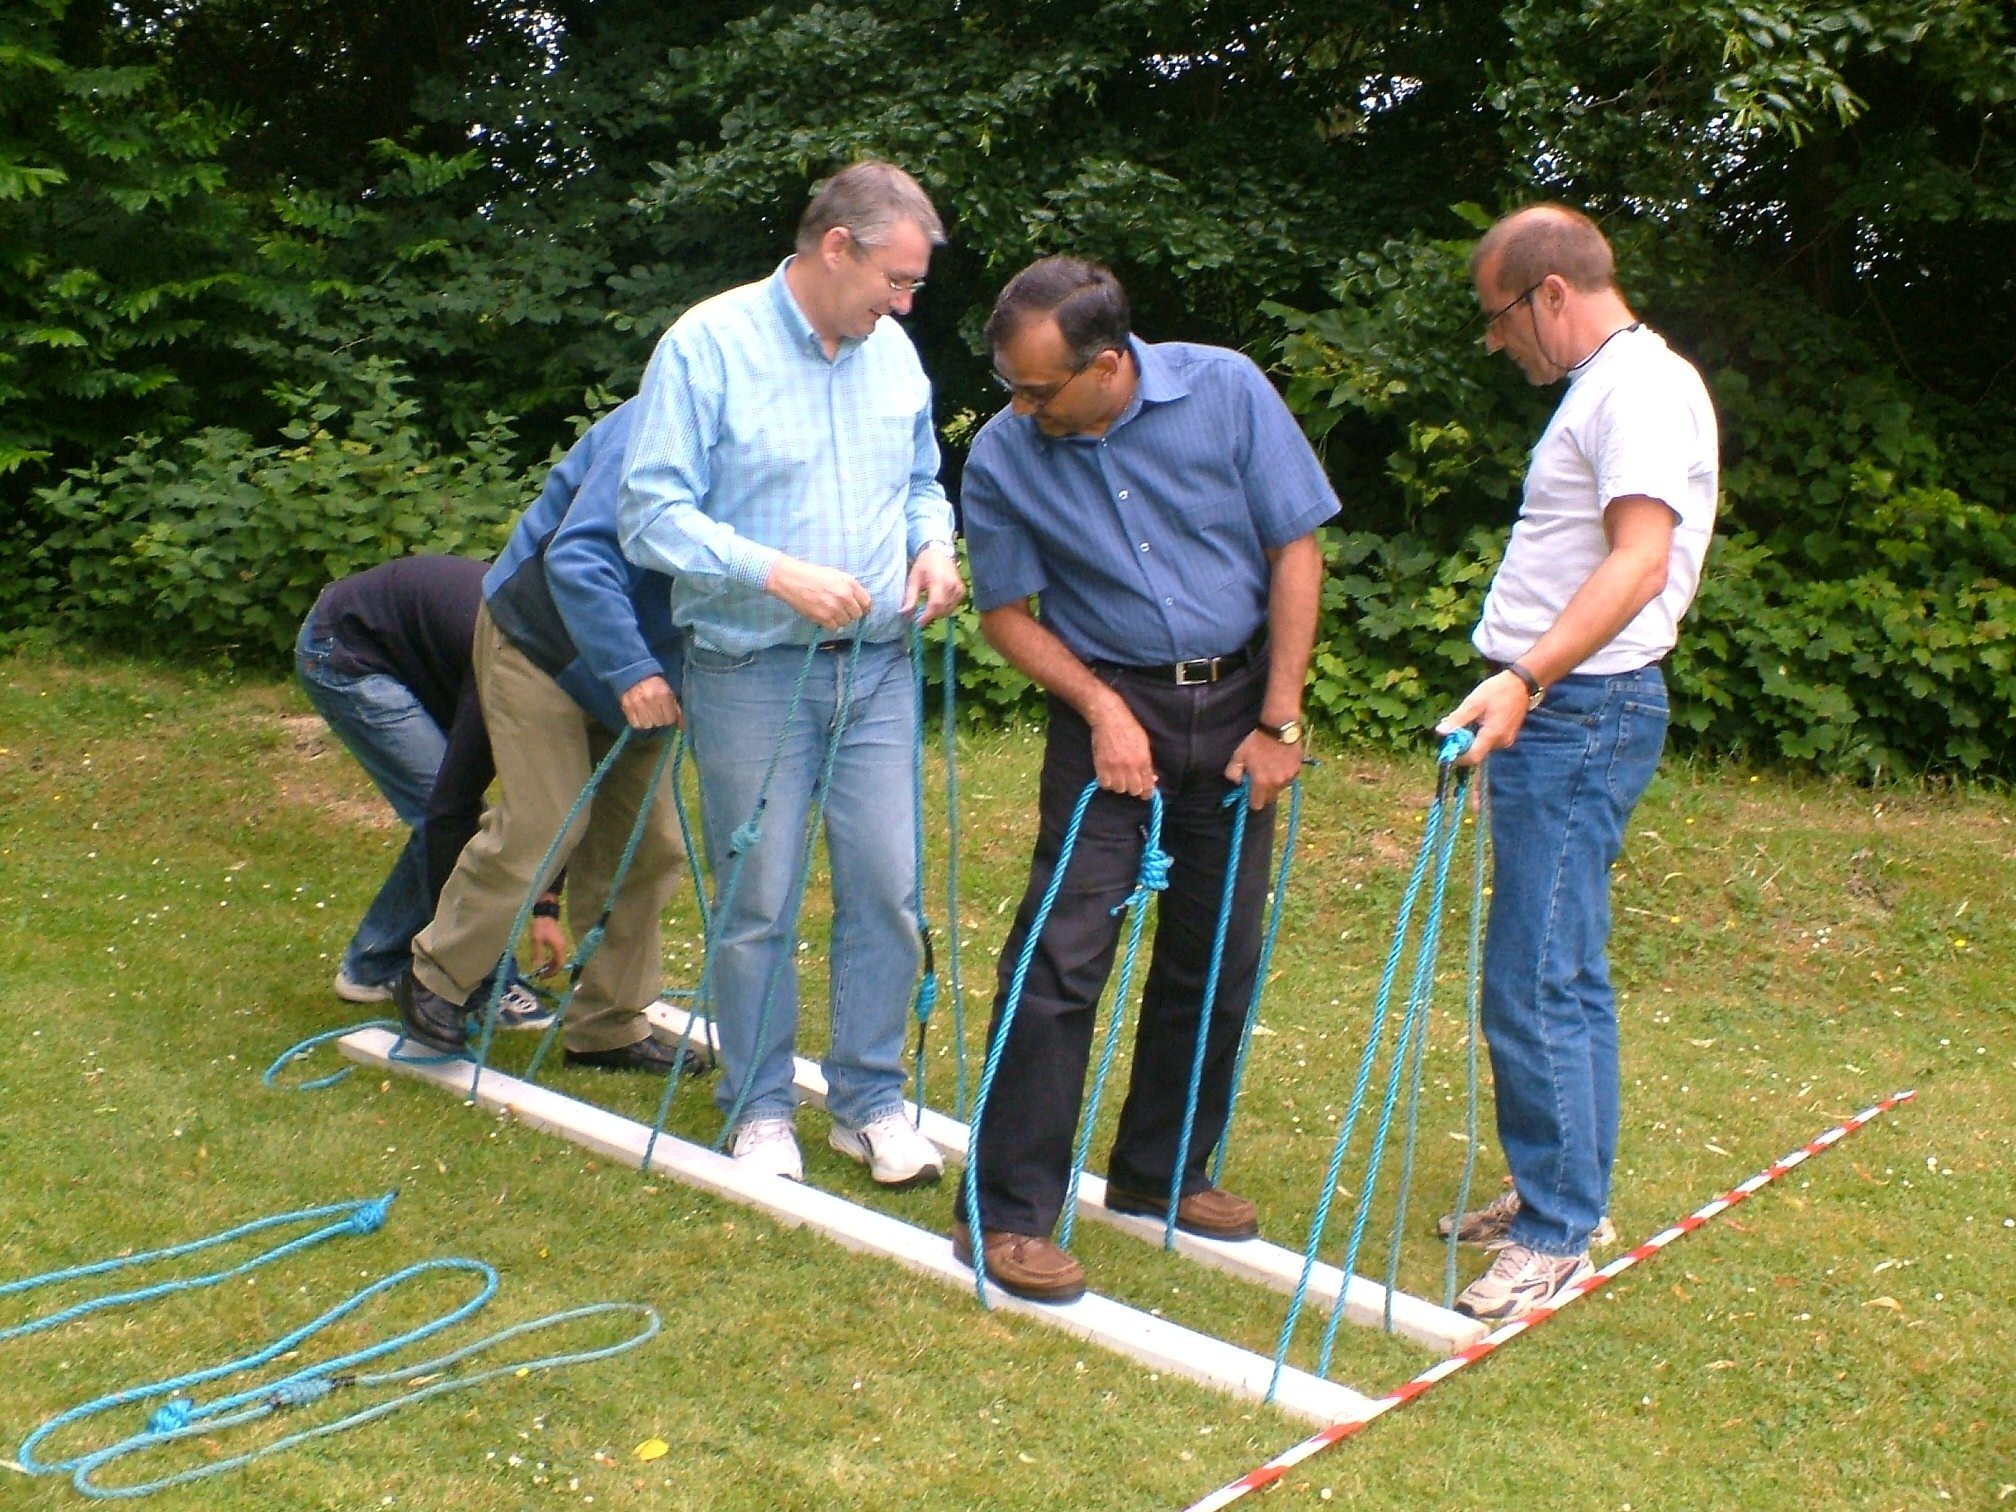 10 Fabulous Team Building Ideas For The Workplace team building activity ice breaker games and ideas 2020